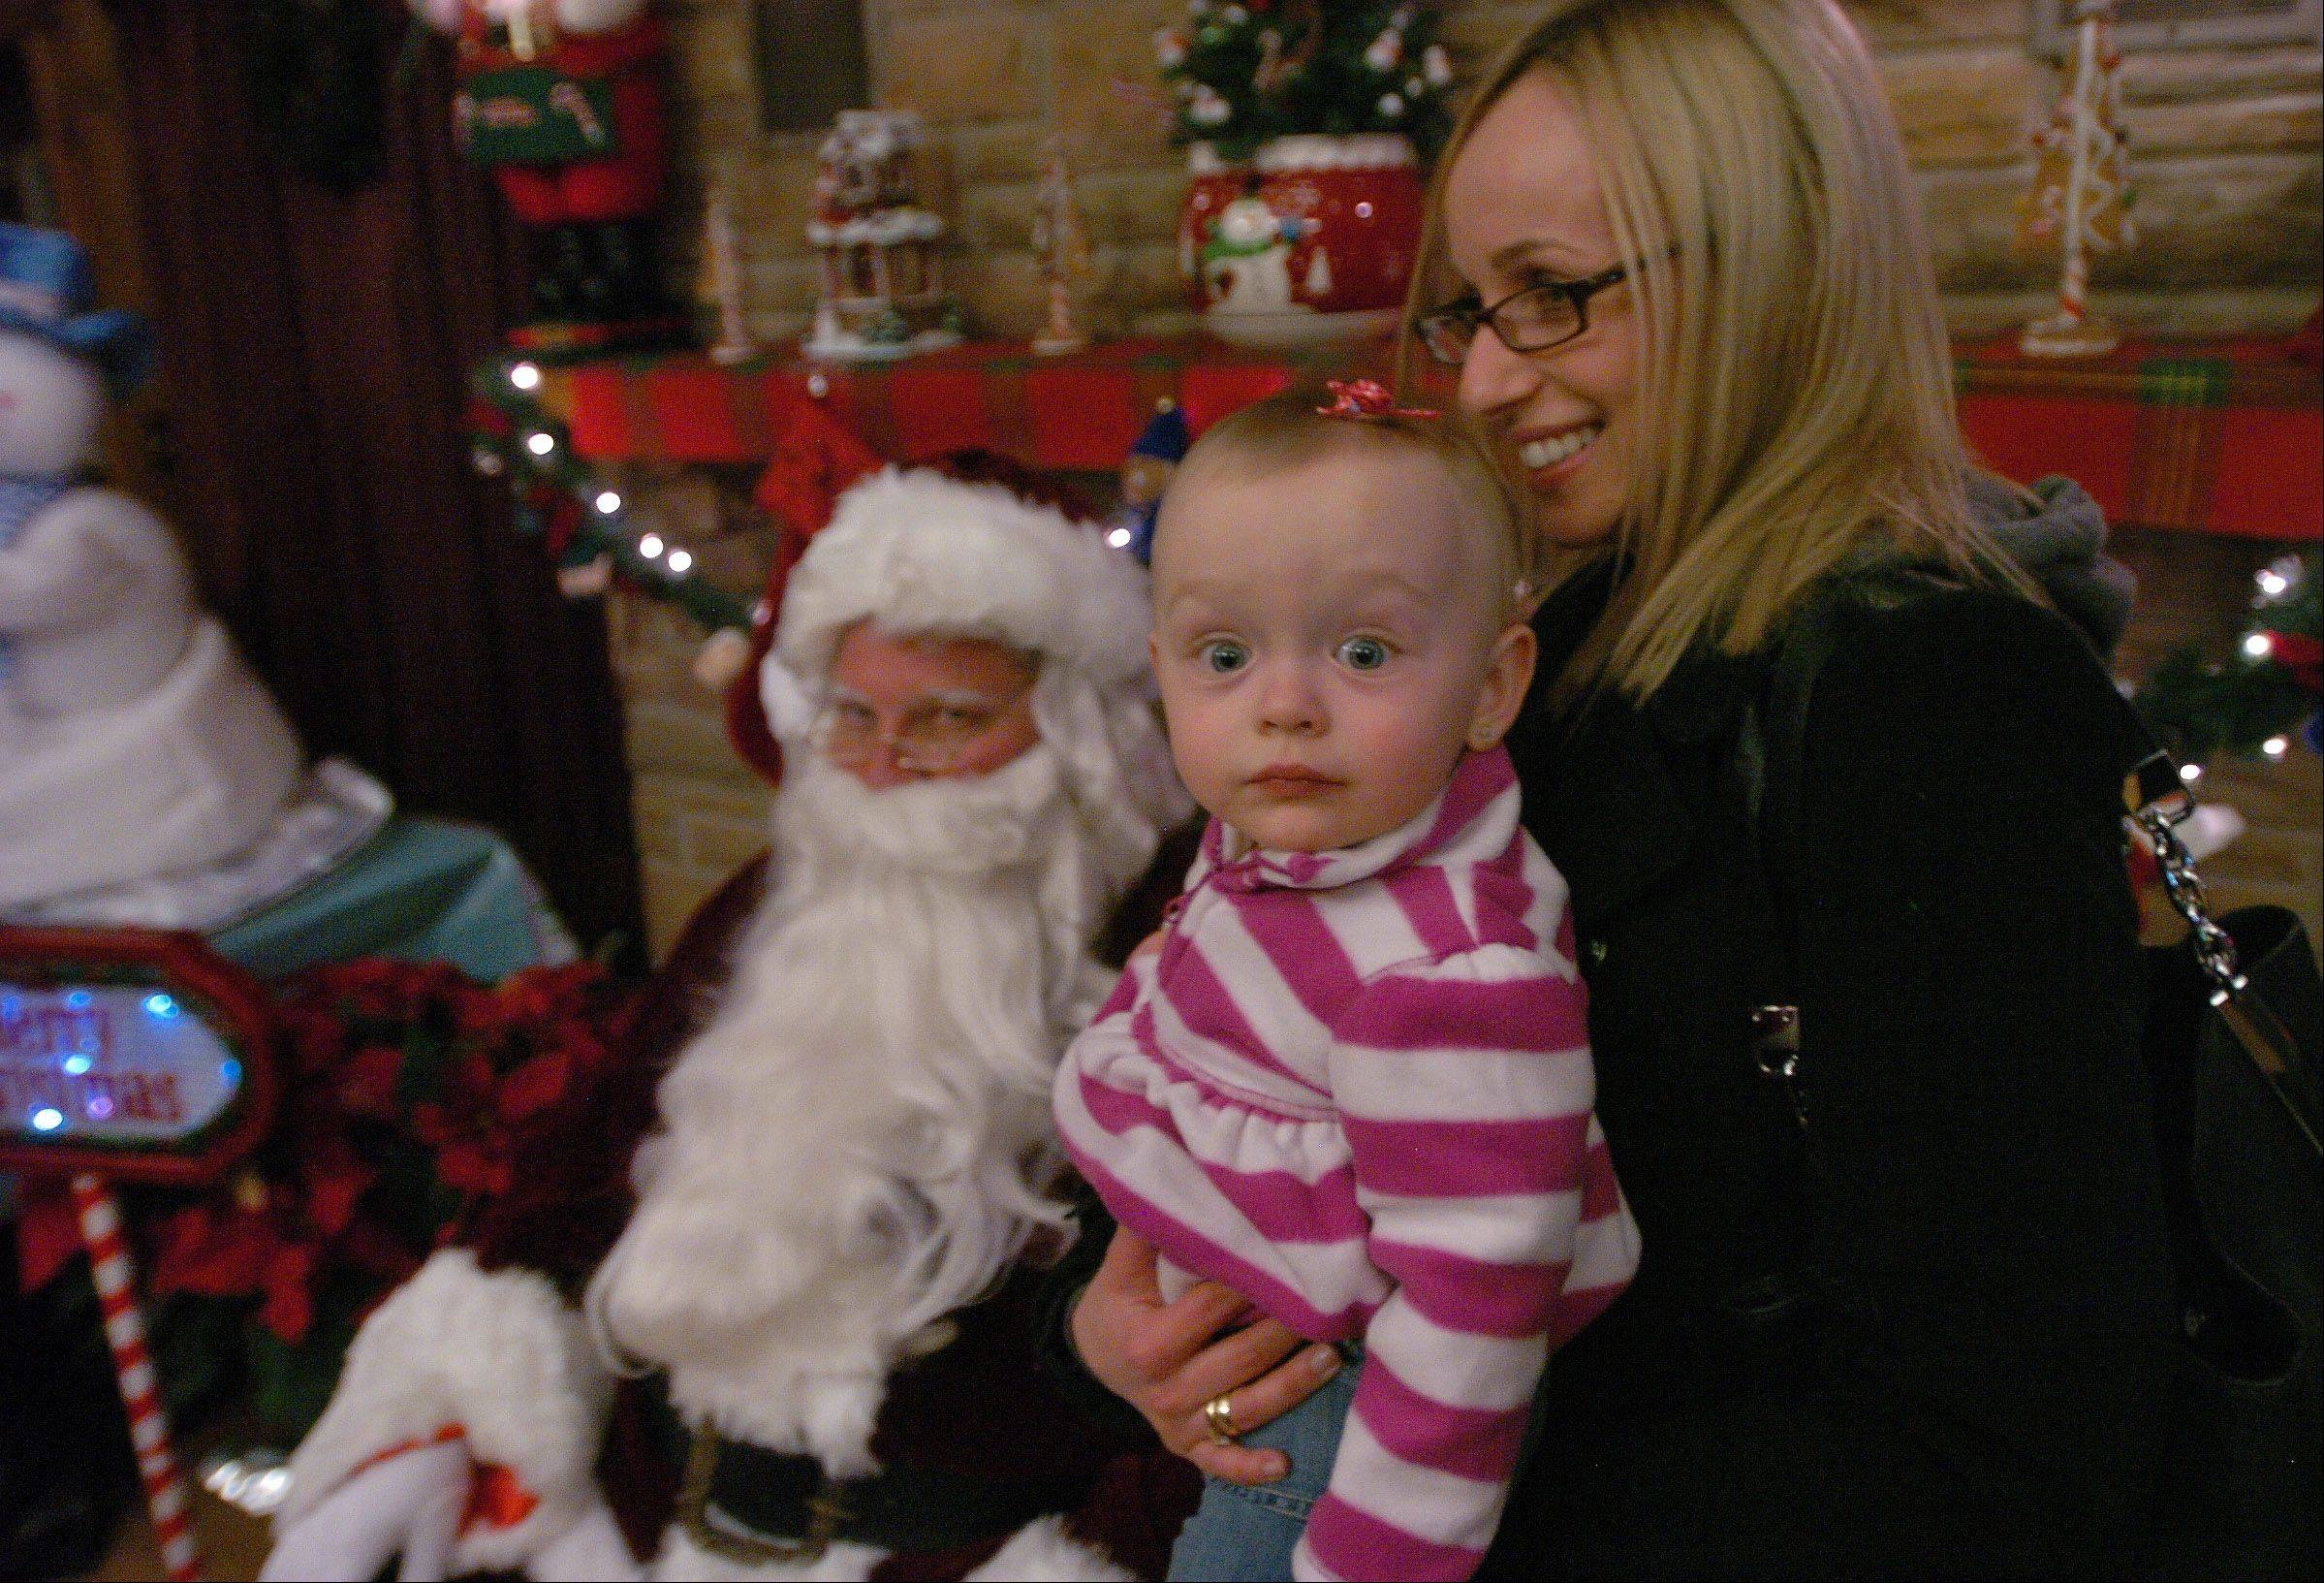 16-month-old Zuzanna Derendar visits Santa in the Log Cabin with her mom Gaba Derendar, prior to the tree lighting in Bartlett Park.